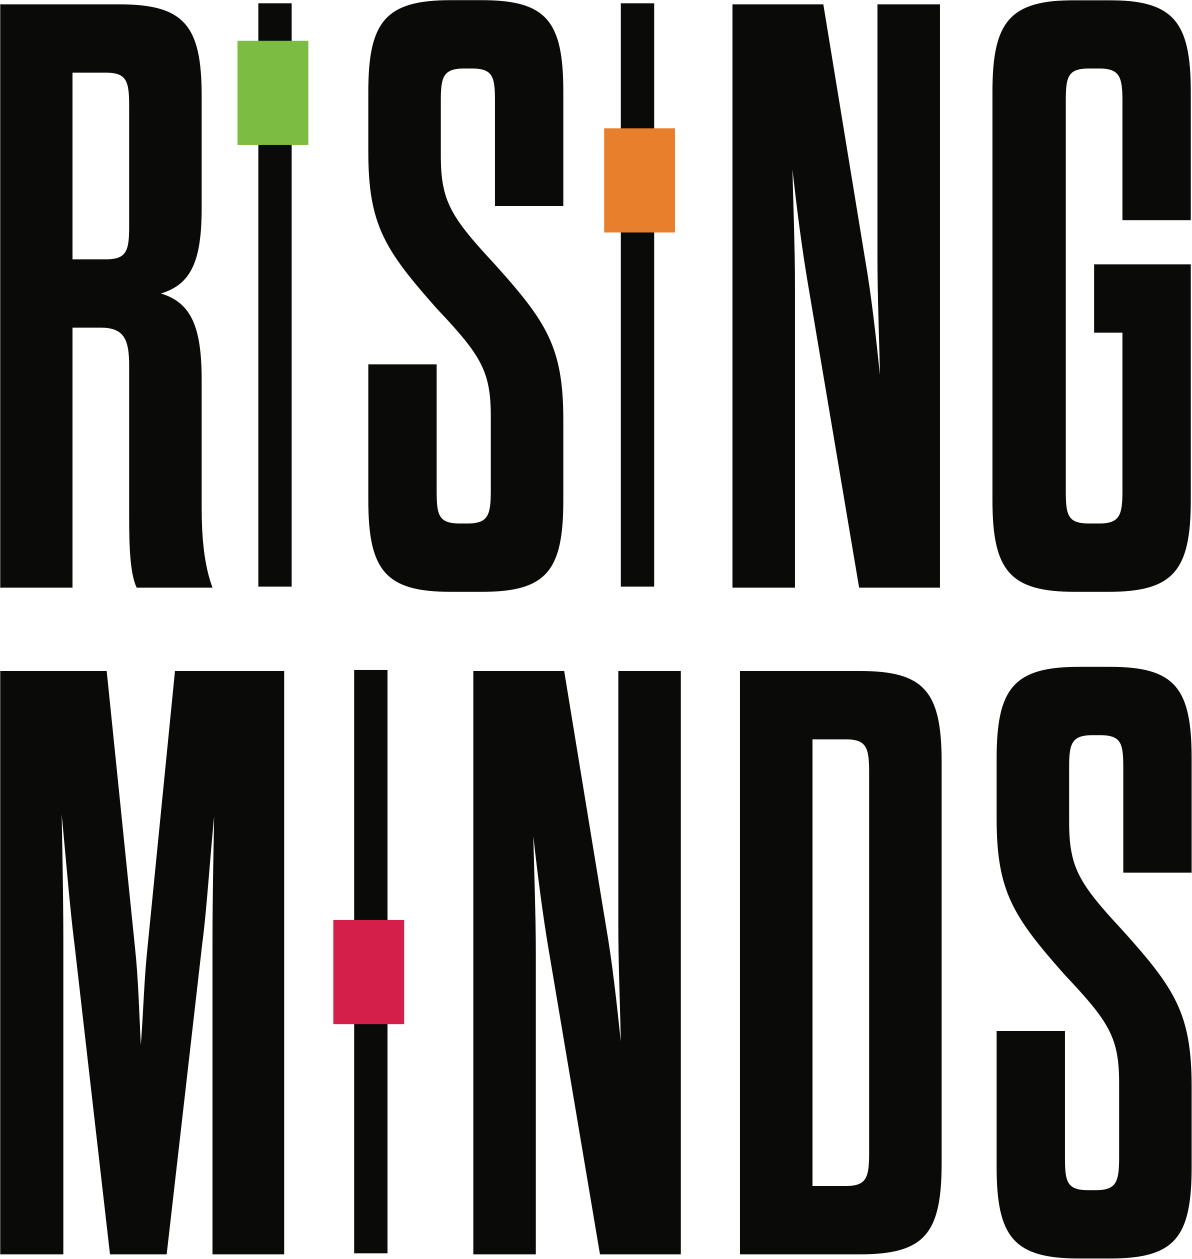 RISING MINDS | Free talks exploring the intersection of technology, business and culture.